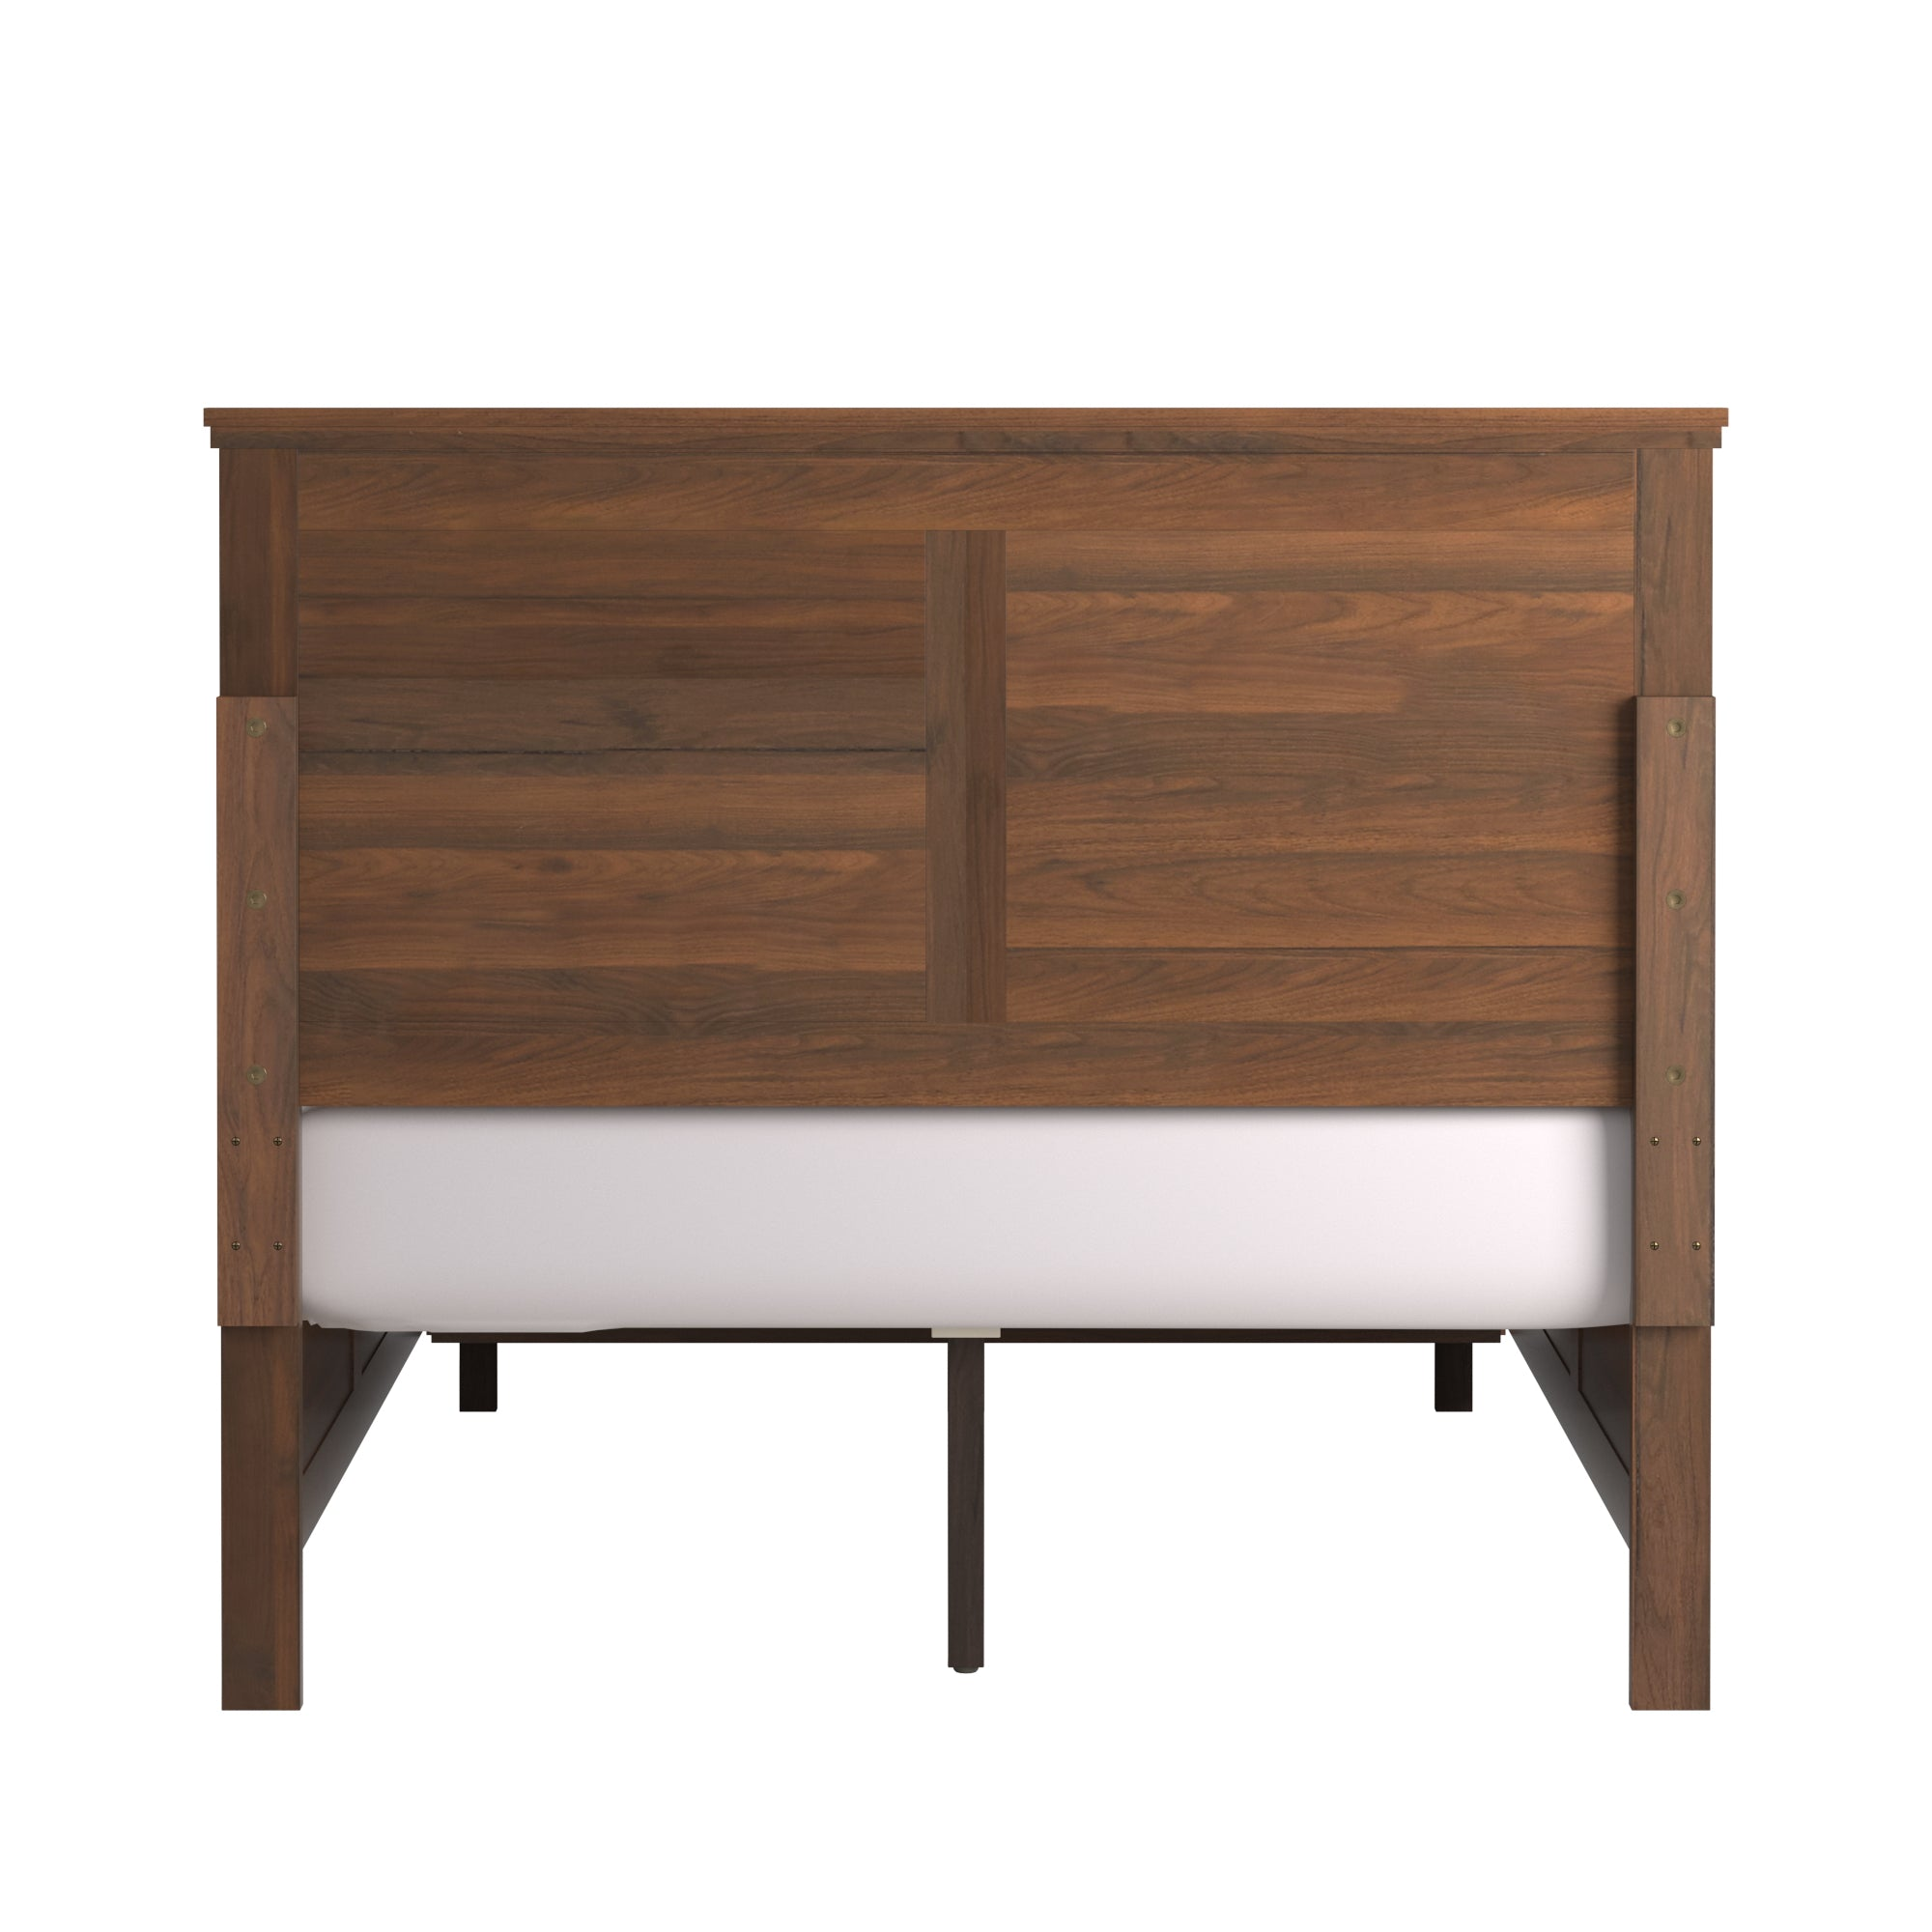 Wood Panel Platform Bed with Storage - Full Size - Walnut Finish